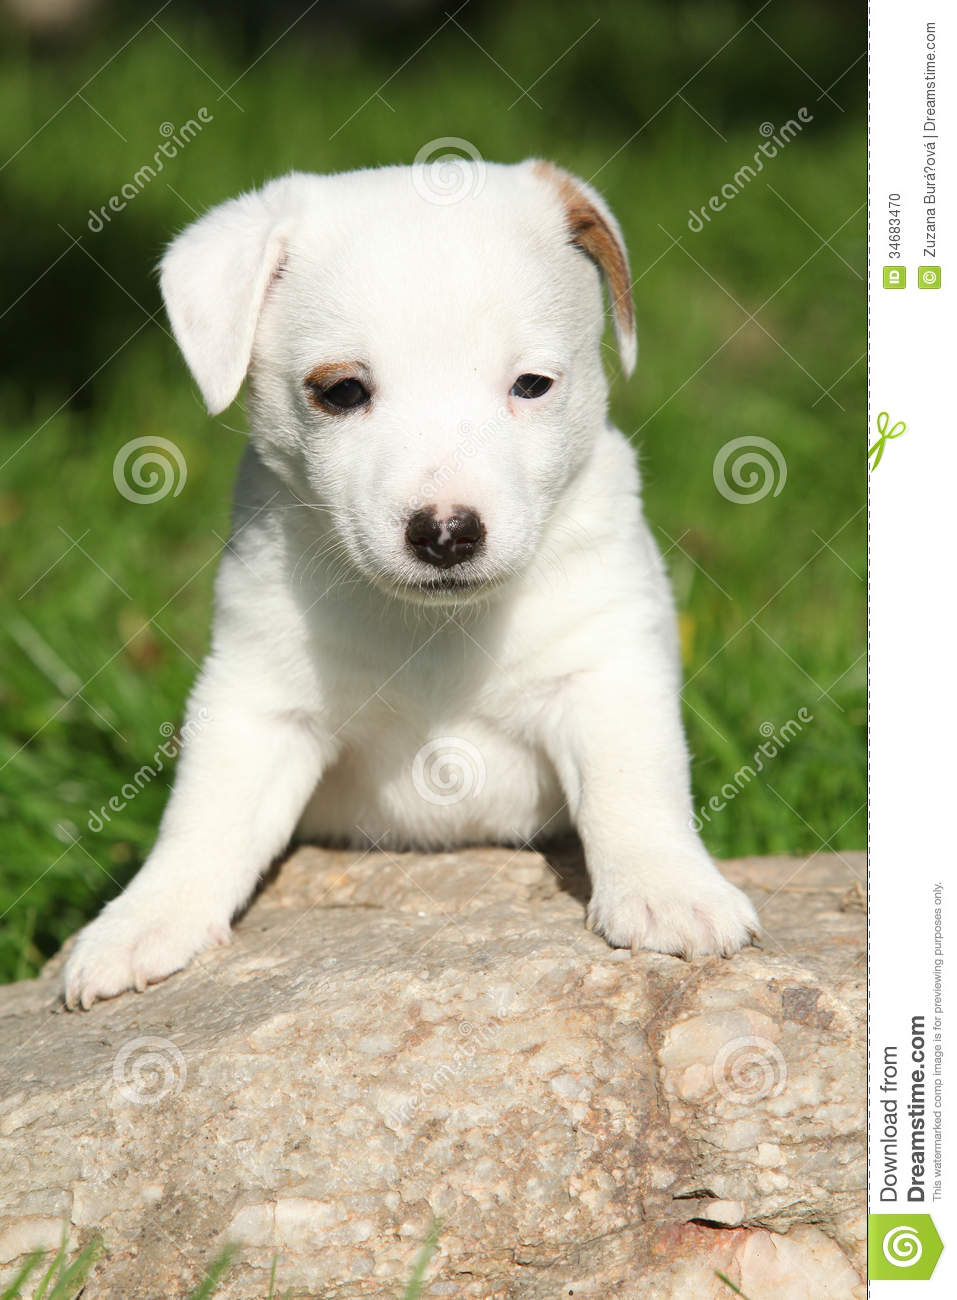 Adorable jack russell terrier puppy on some stone in the garden.